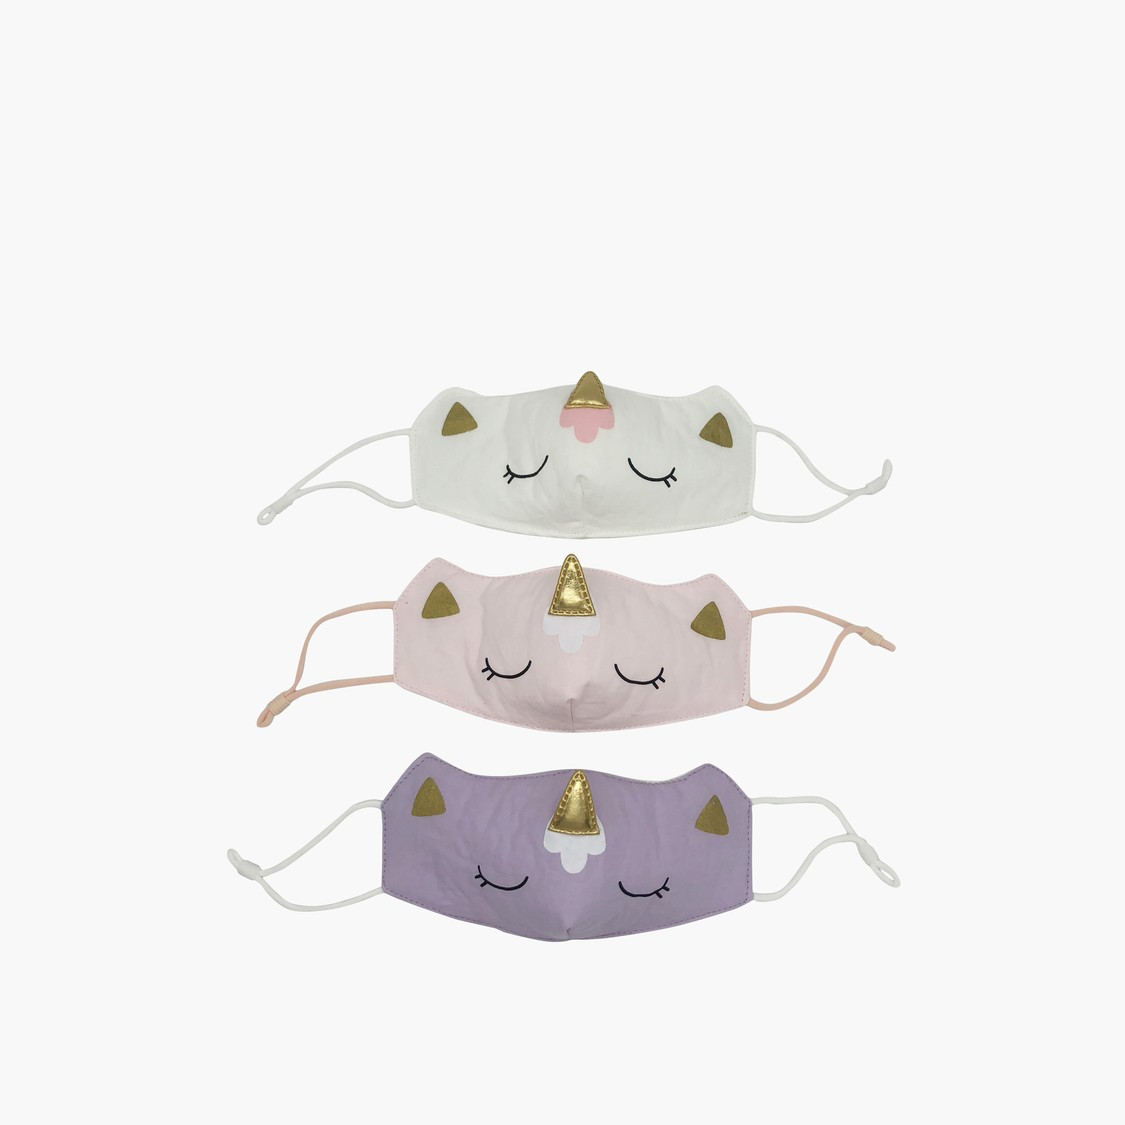 Set of 3 - Printed Anti-Dust Mask with Applique Detail